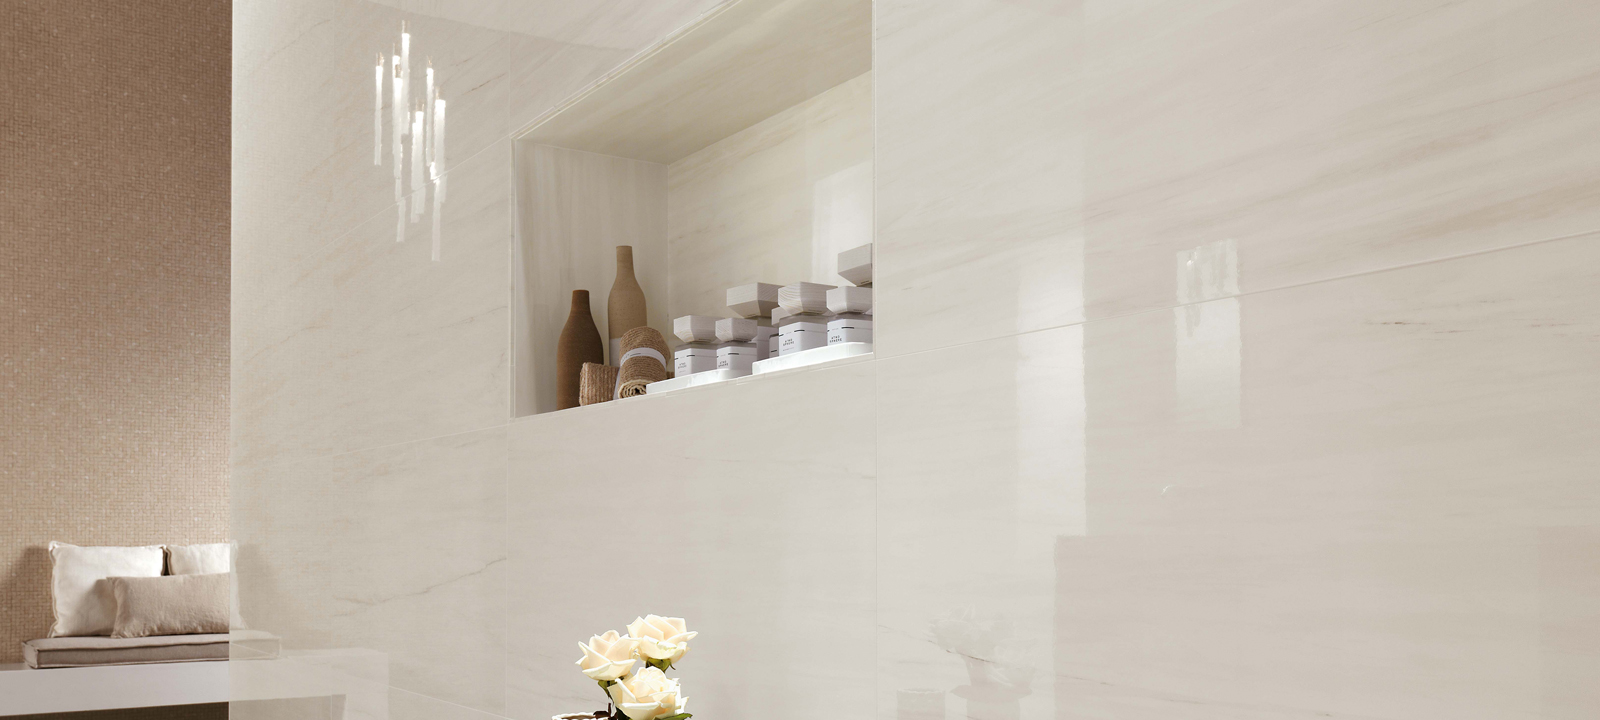 Ajami Surface Dolomite stone marble flooring for interior, exterior, fireplace, kitchen, bathroom